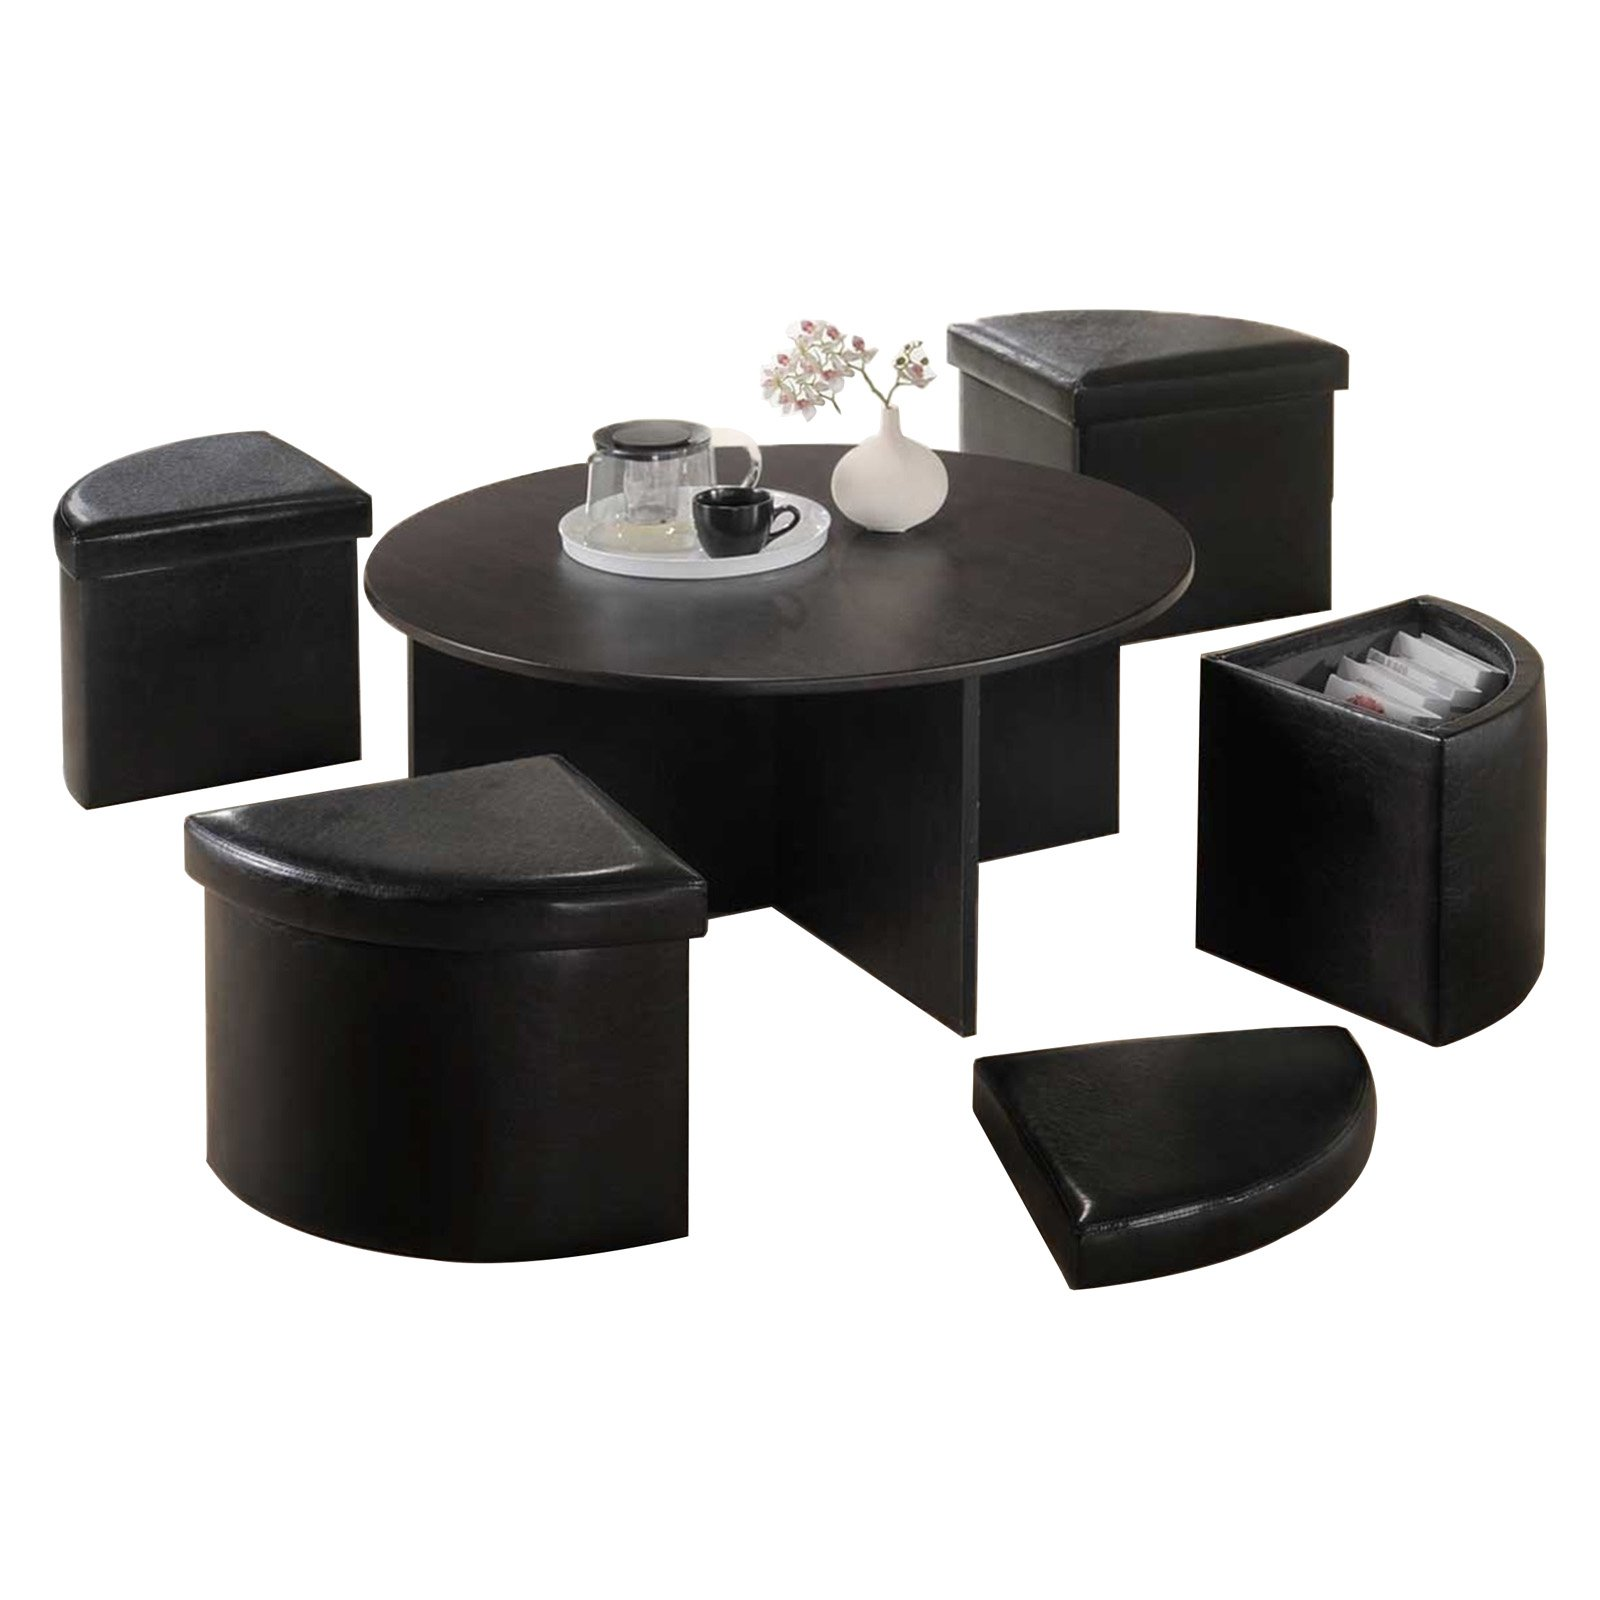 oakland living space saving modern black coffee table with nesting ottomans